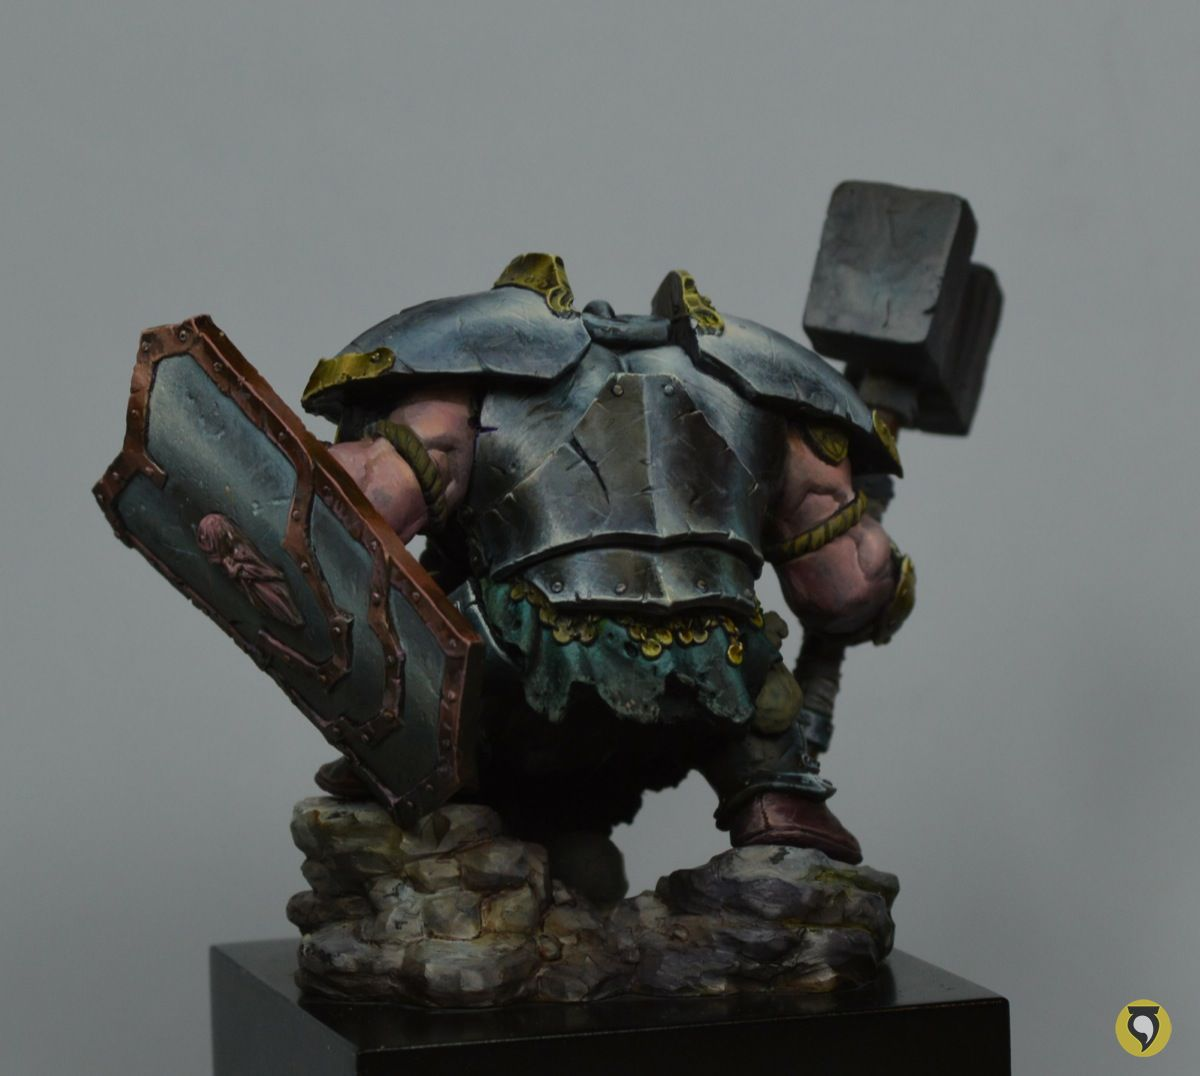 nythgor-marc-masclans-article-tutorial-hera-models-raul-latorre-dwarf-process-21